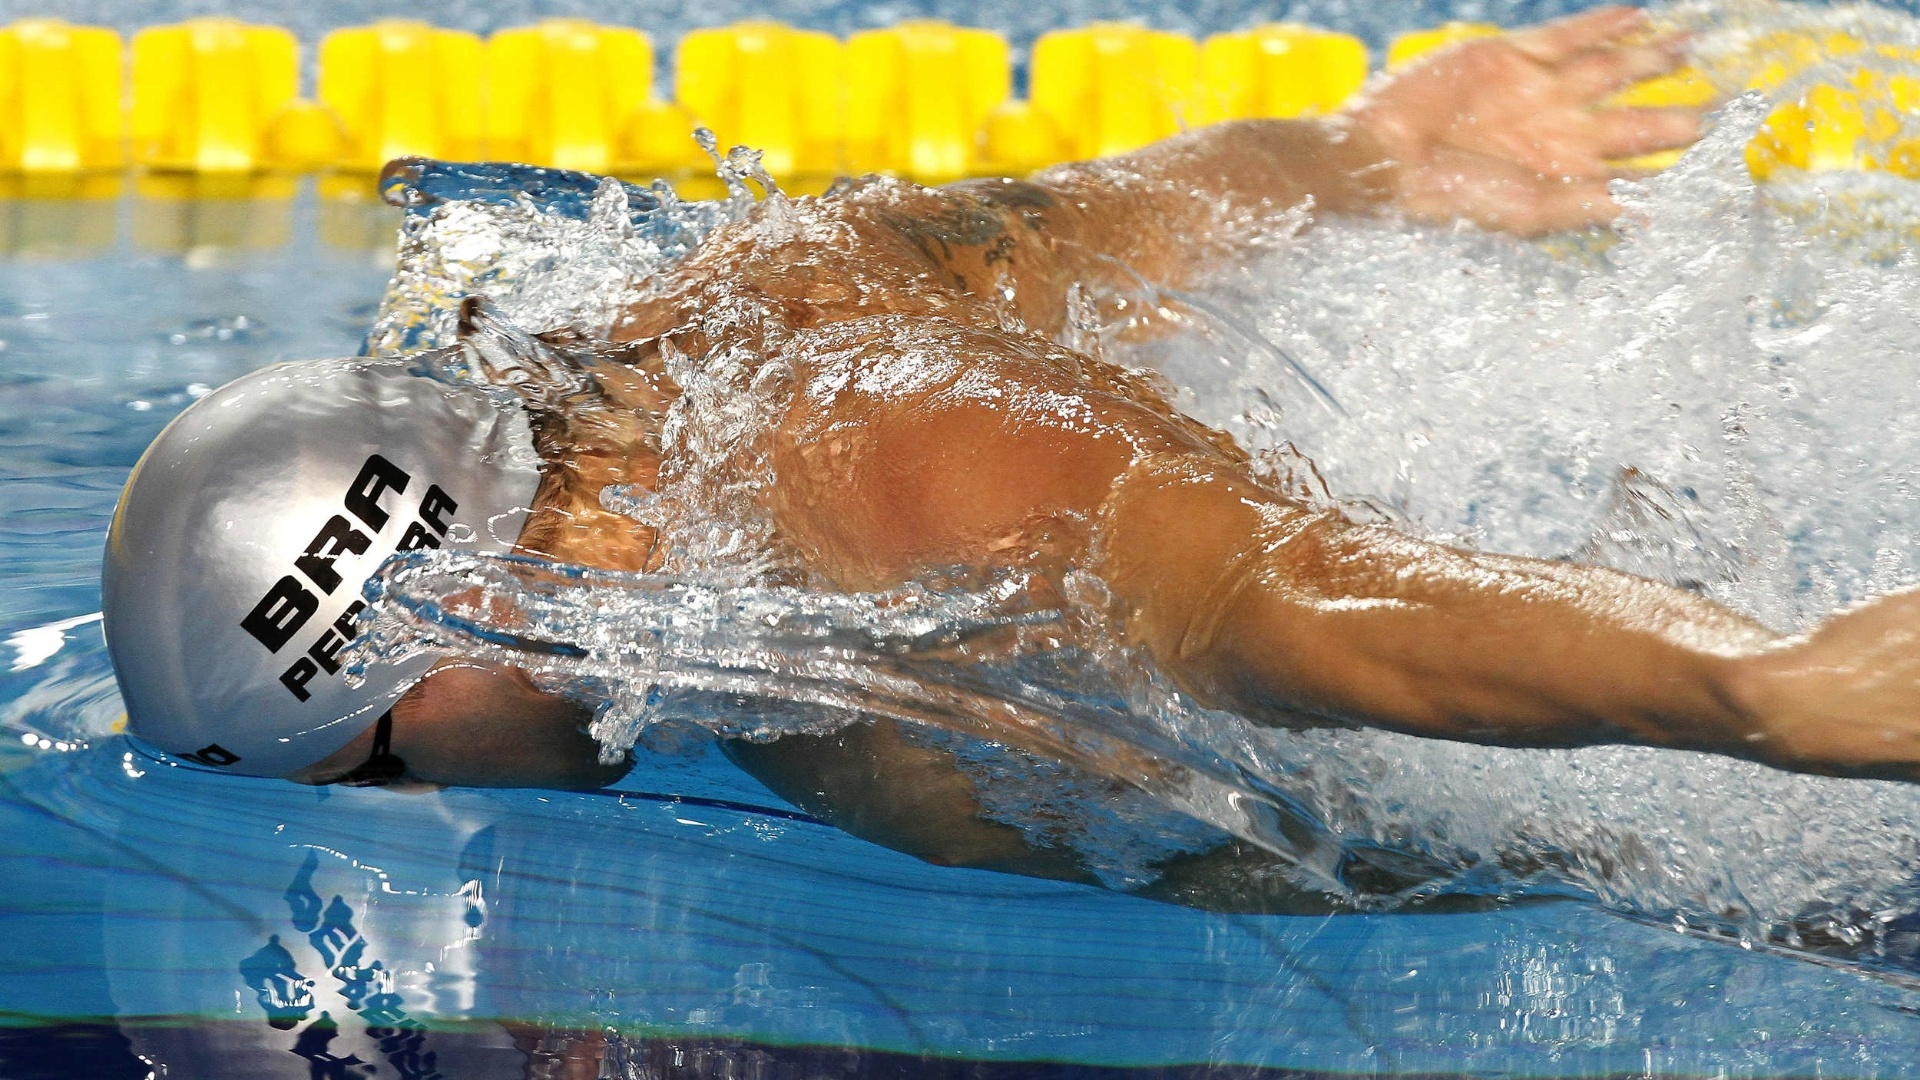 Thiago Pereira nada final dos 400m medley para conquistar a primeira medalha de ouro brasileira no Pan de Guadalajara (15/10/2011)